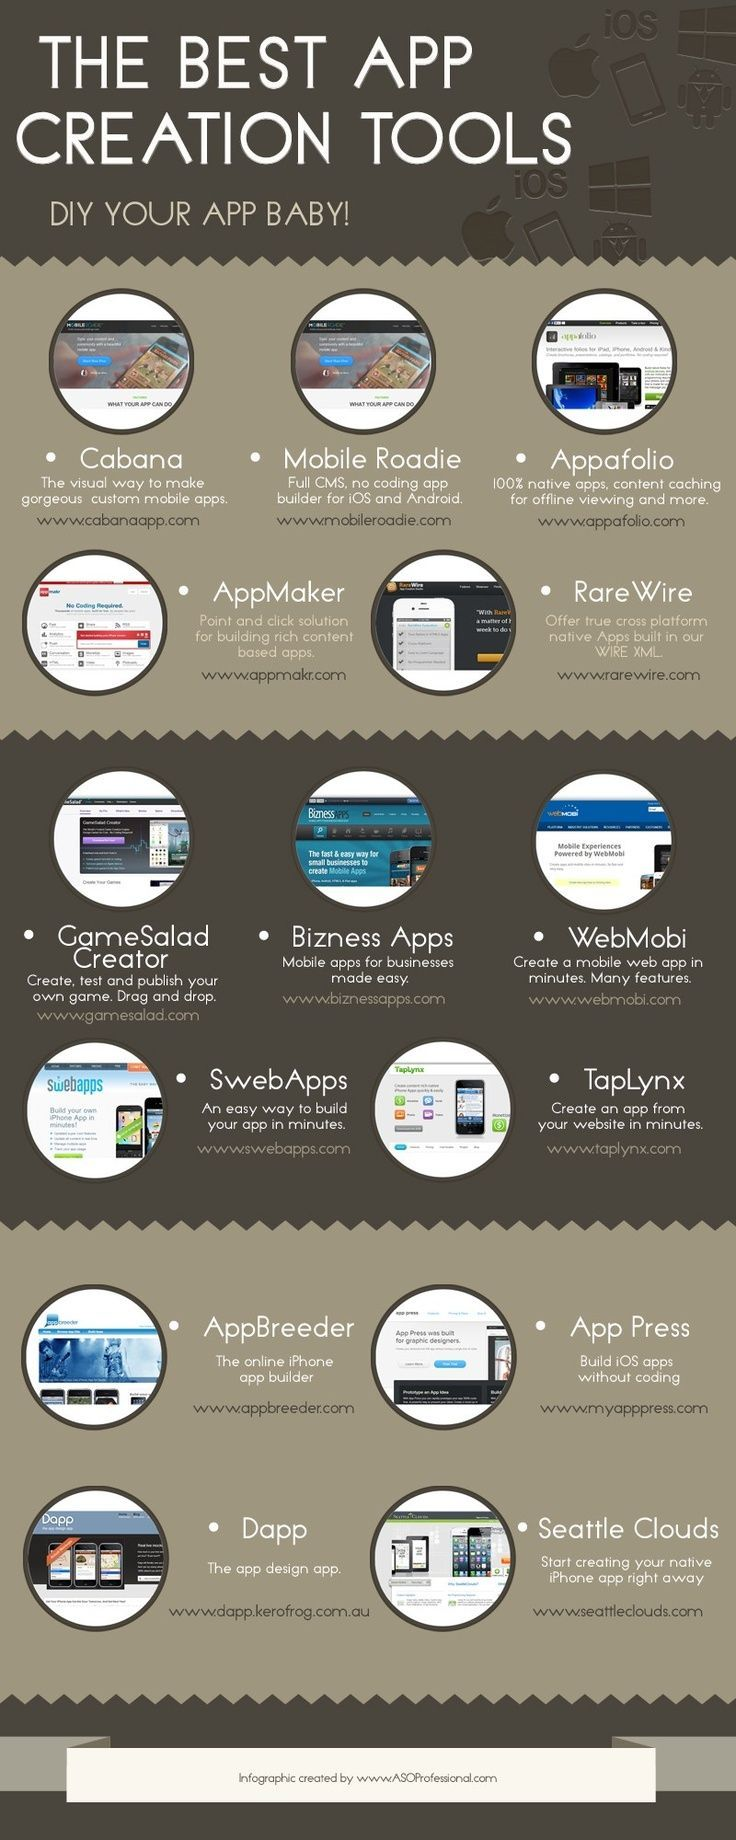 Developing apps won't make your business a leader in mobile marketing these days. But you can't afford not to have a mobile strategy. Developing an app may sound scary. But there are many tools that could help you with the process. This infographic by ASOProfessional.com shows how you can create your own apps: